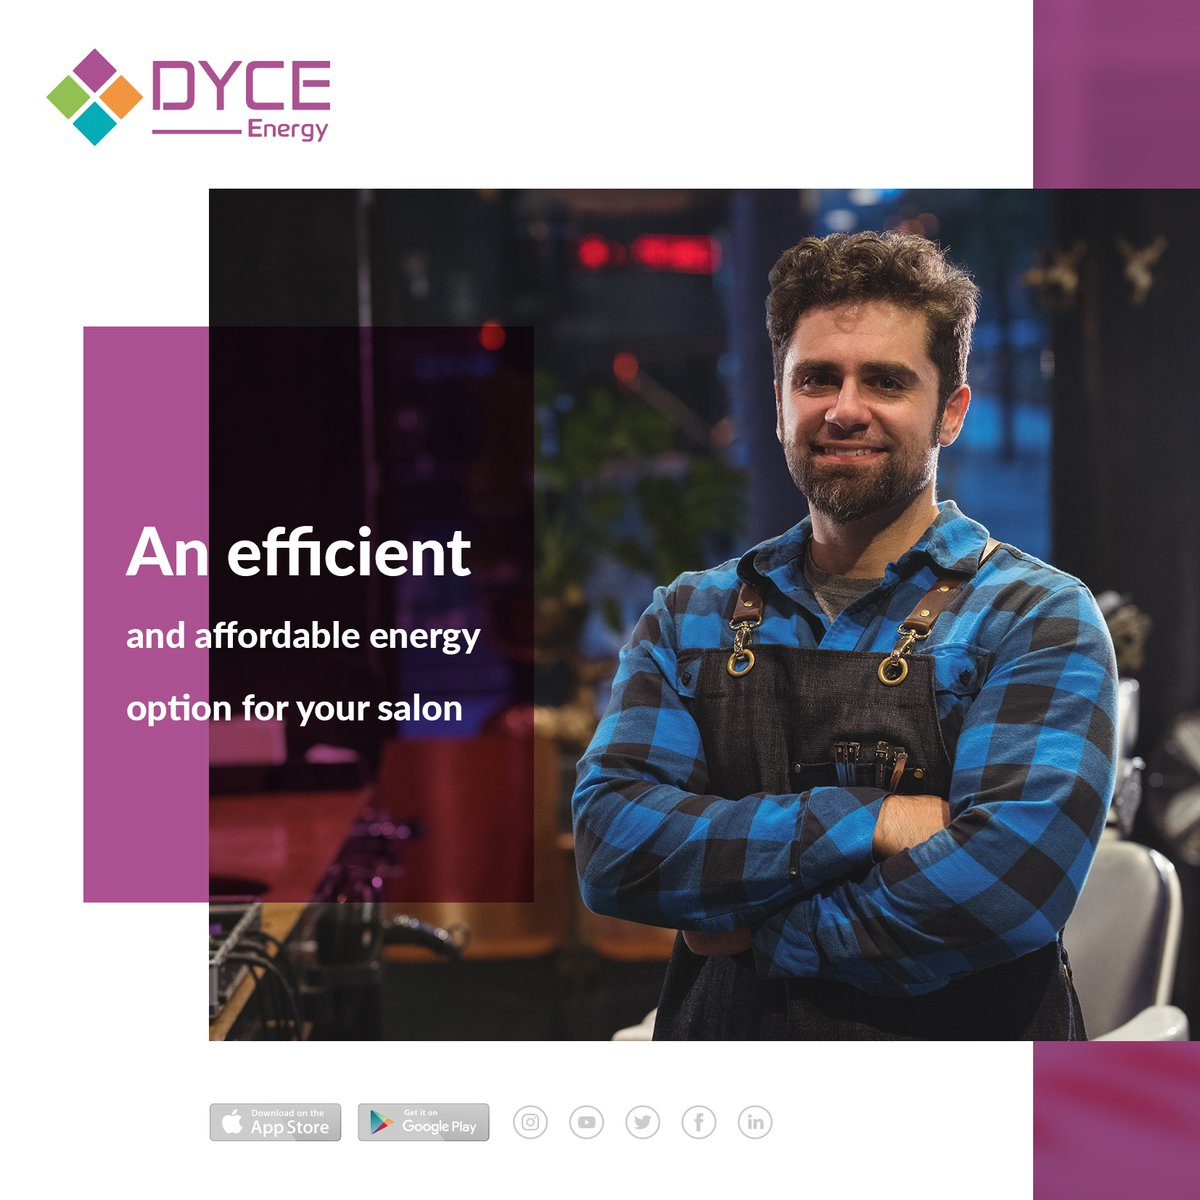 An efficient and affordable energy option for your salon  GET A QUOTE ▶  ✆ 01709 357315 ✉ enquire@dyce-energy.co.uk  #saveenergy #saveenergysavemoney #energyEfficient #EnergyEfficiency #EnergySaving #Givingyourbusinessenergy #uk #unitedkindgom